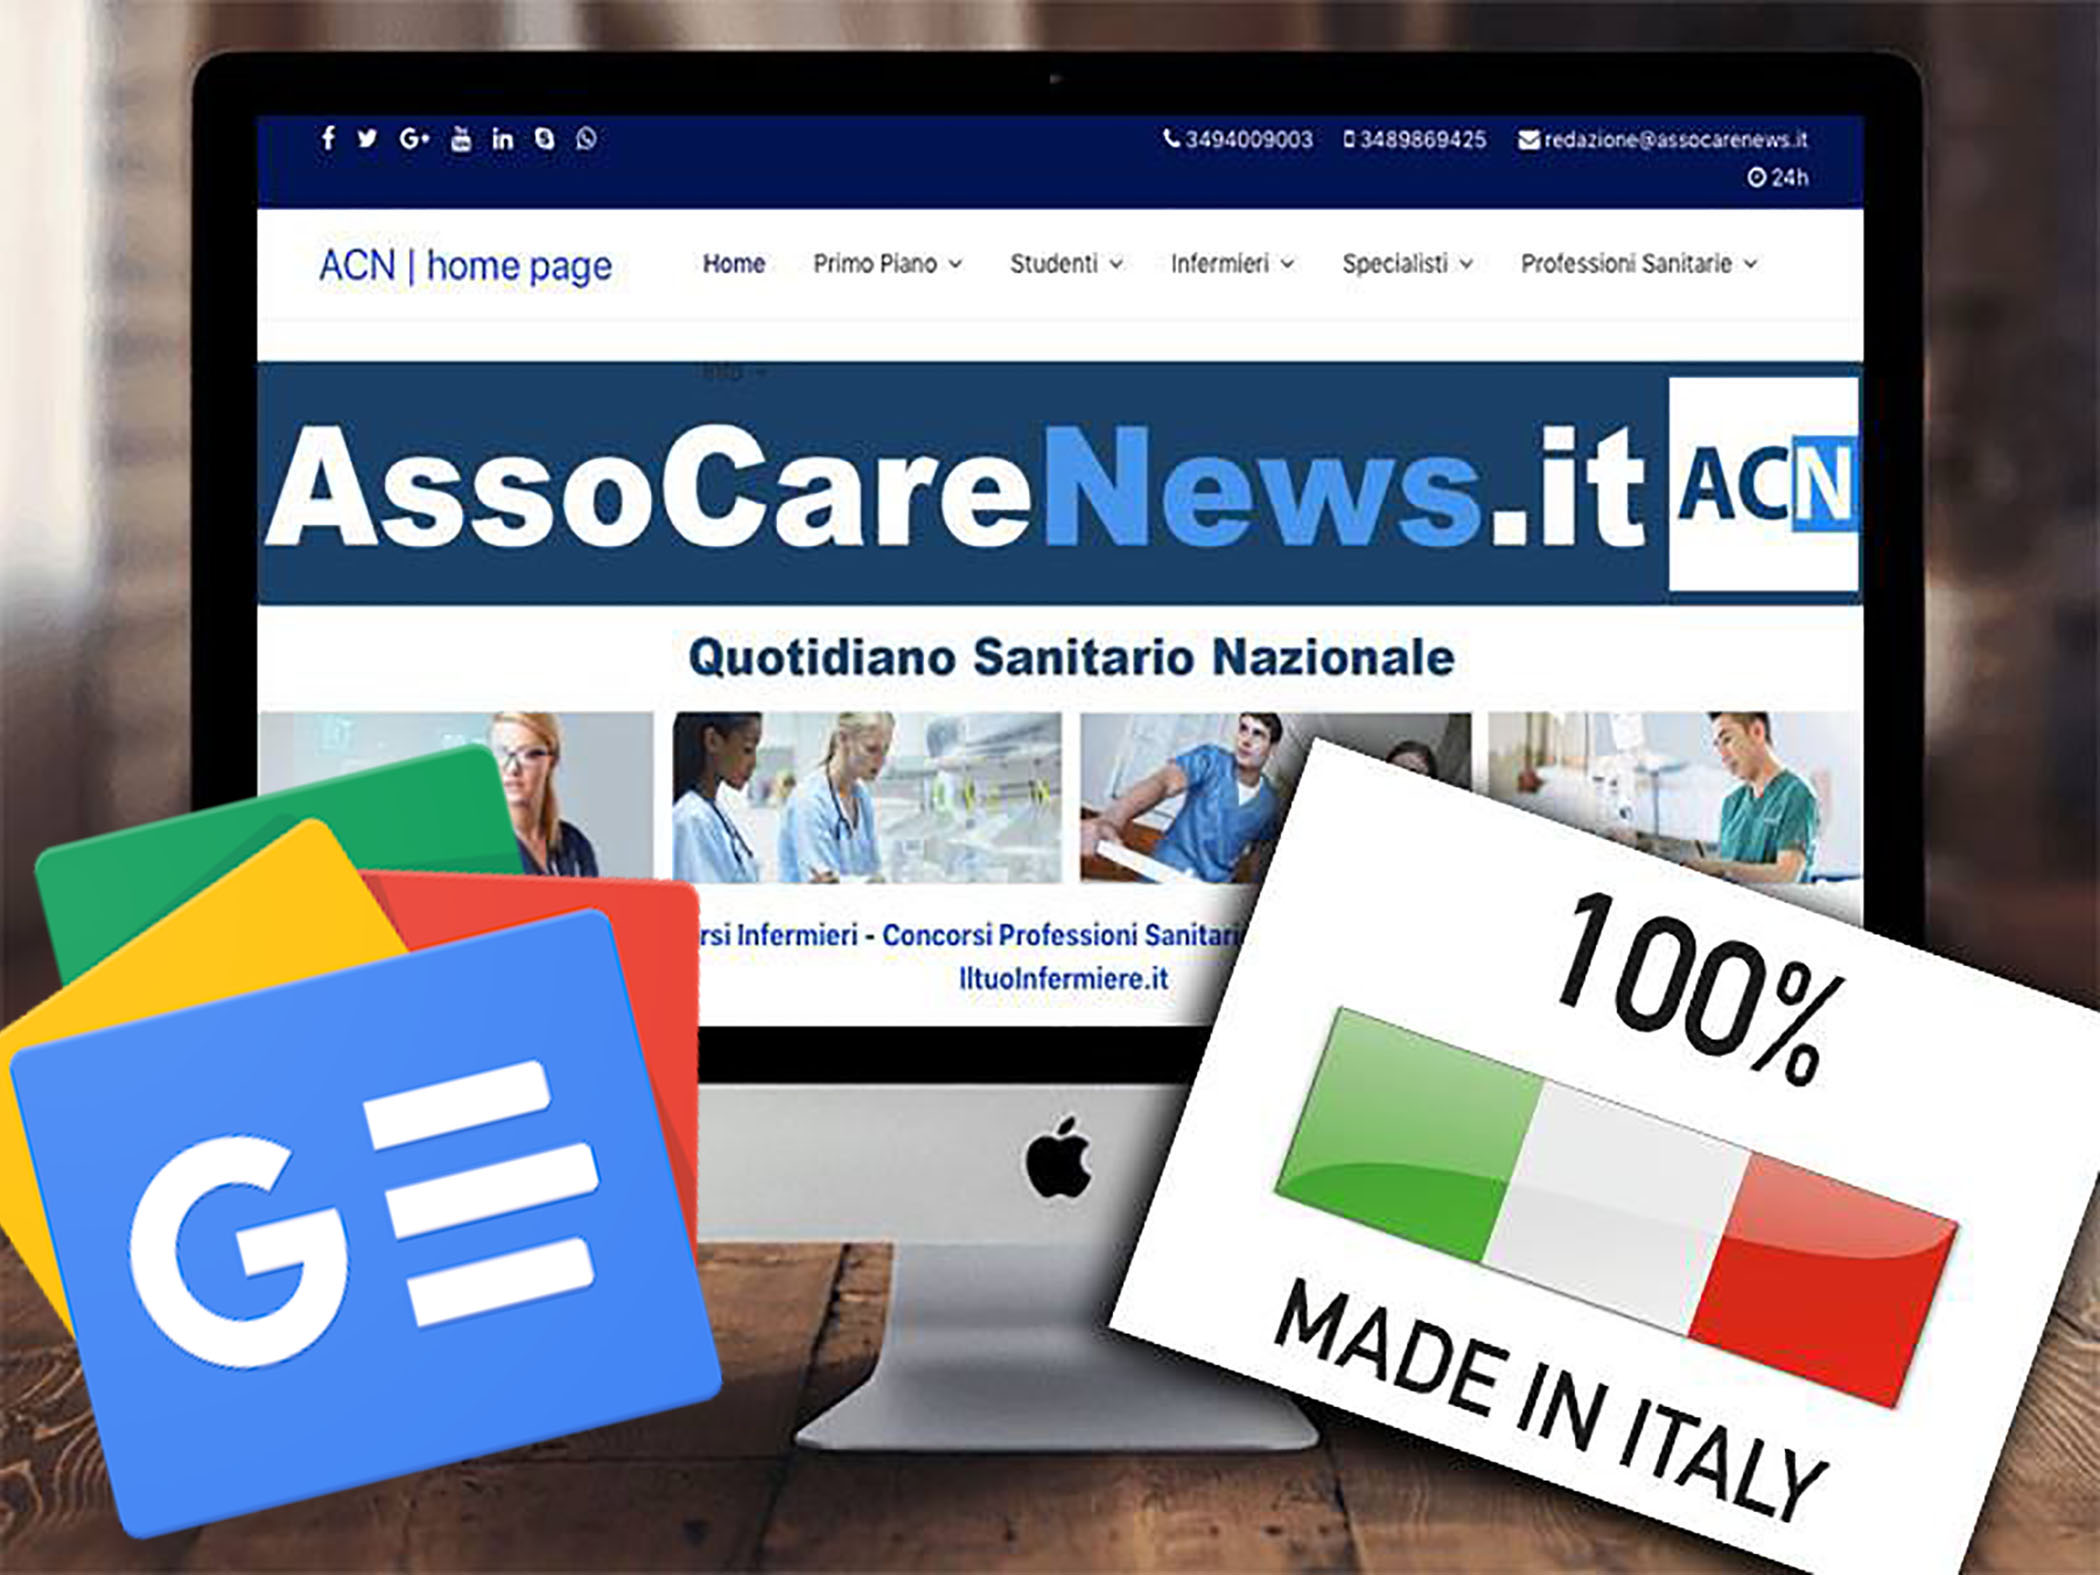 Segui AssoCareNews.it anche su Google News.